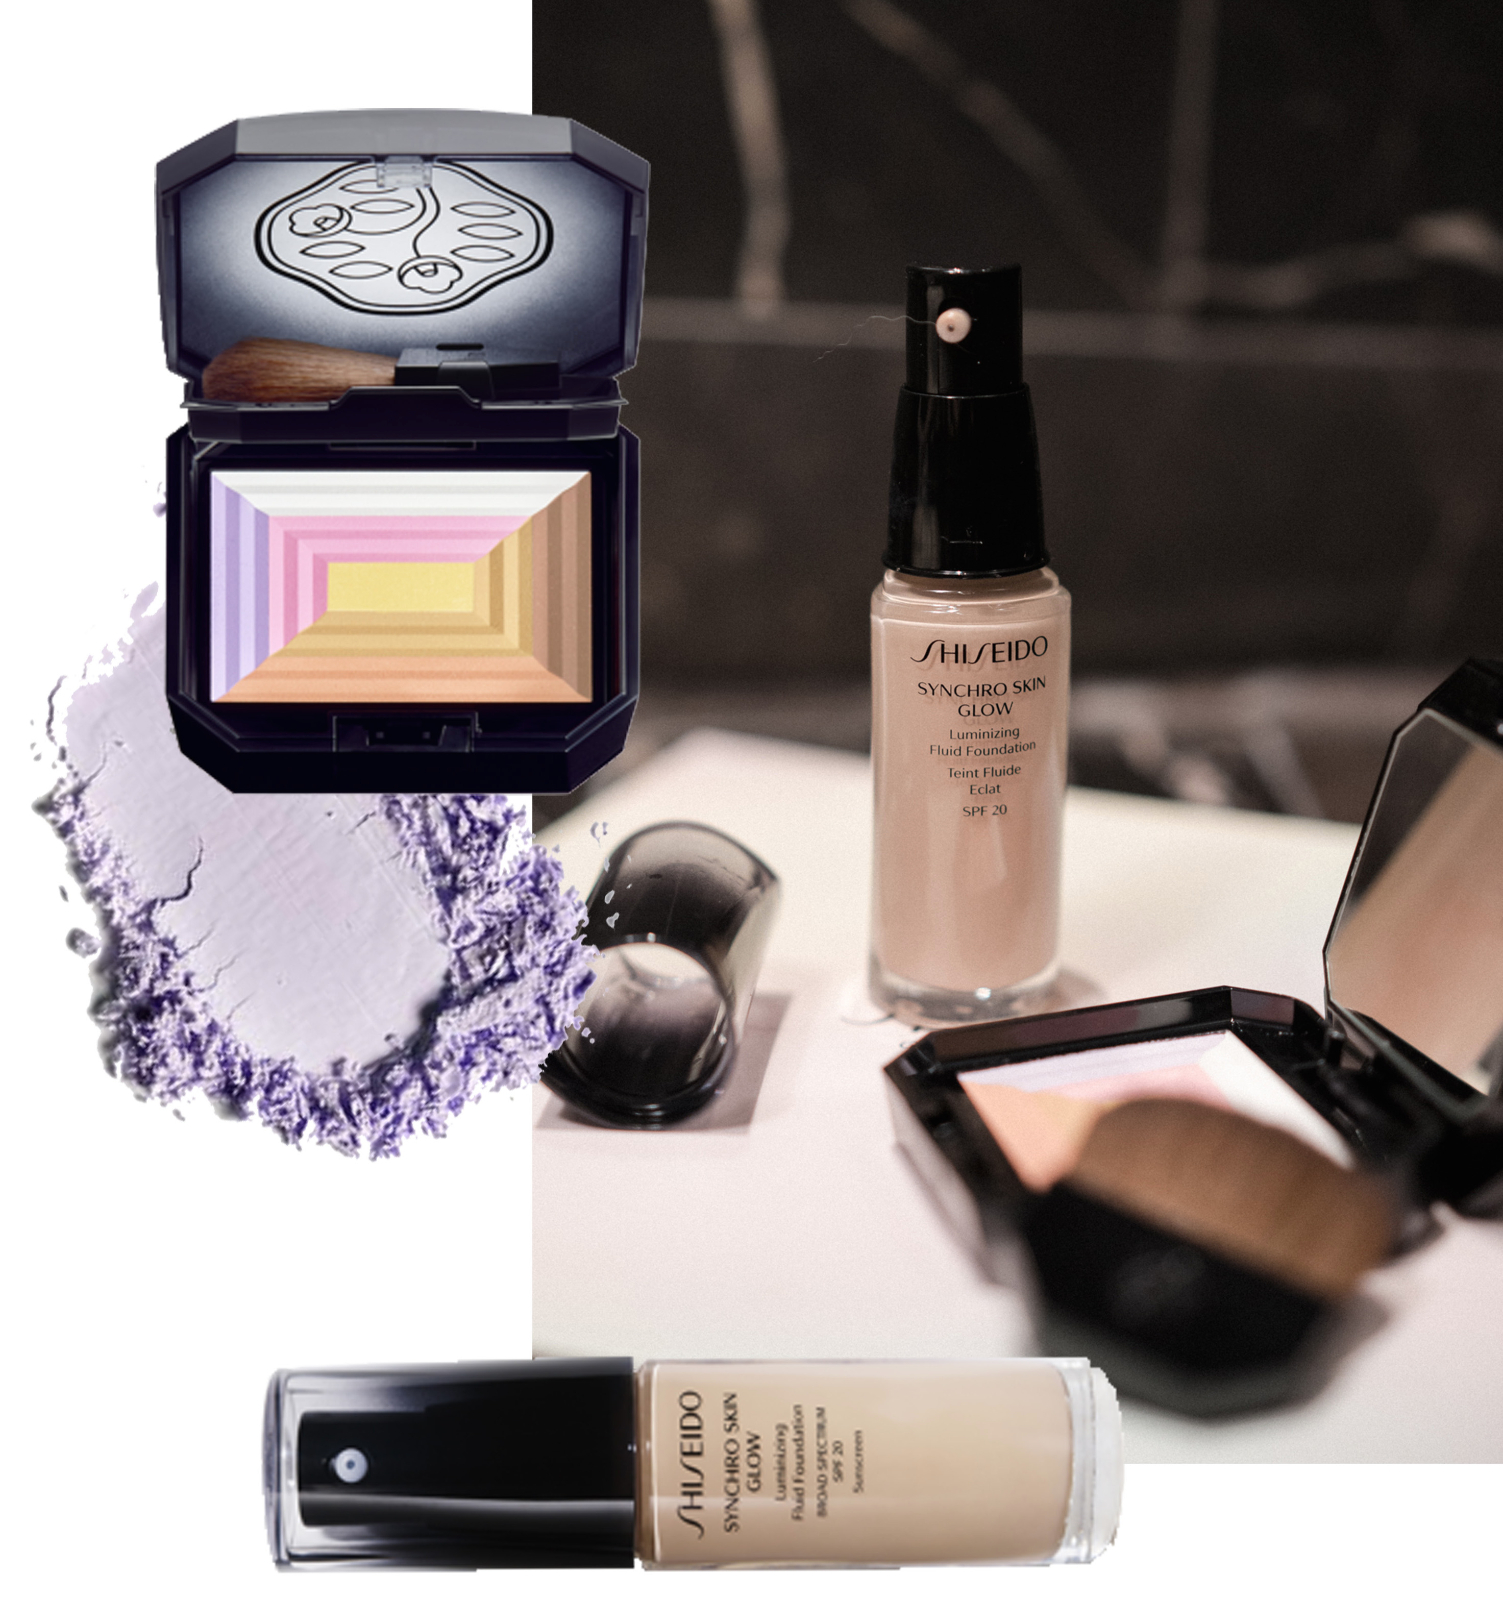 Shiseido 7 Lights Powder Illuminator_The-Limits-of-Control-Fashion-Fashionblogger-Blogger-Berlin-Deutschland-Modeblog-Modeblogger